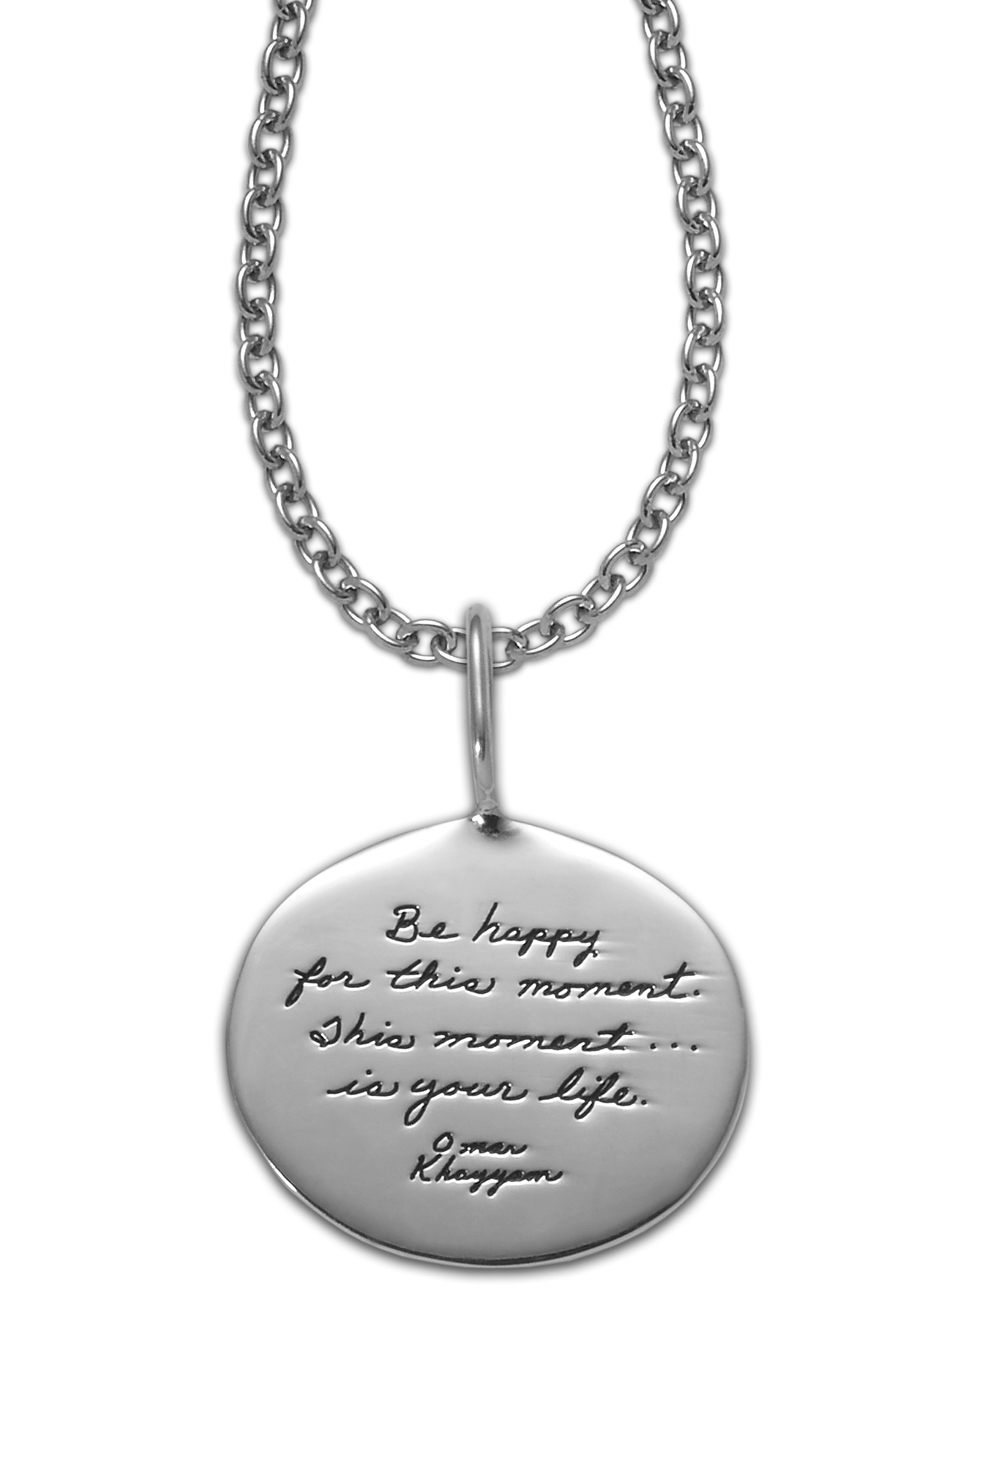 Bb becker inspirational jewelry this moment pendant inspirational sterling silver oval pendant with engraved words be happy for this moment this mozeypictures Choice Image